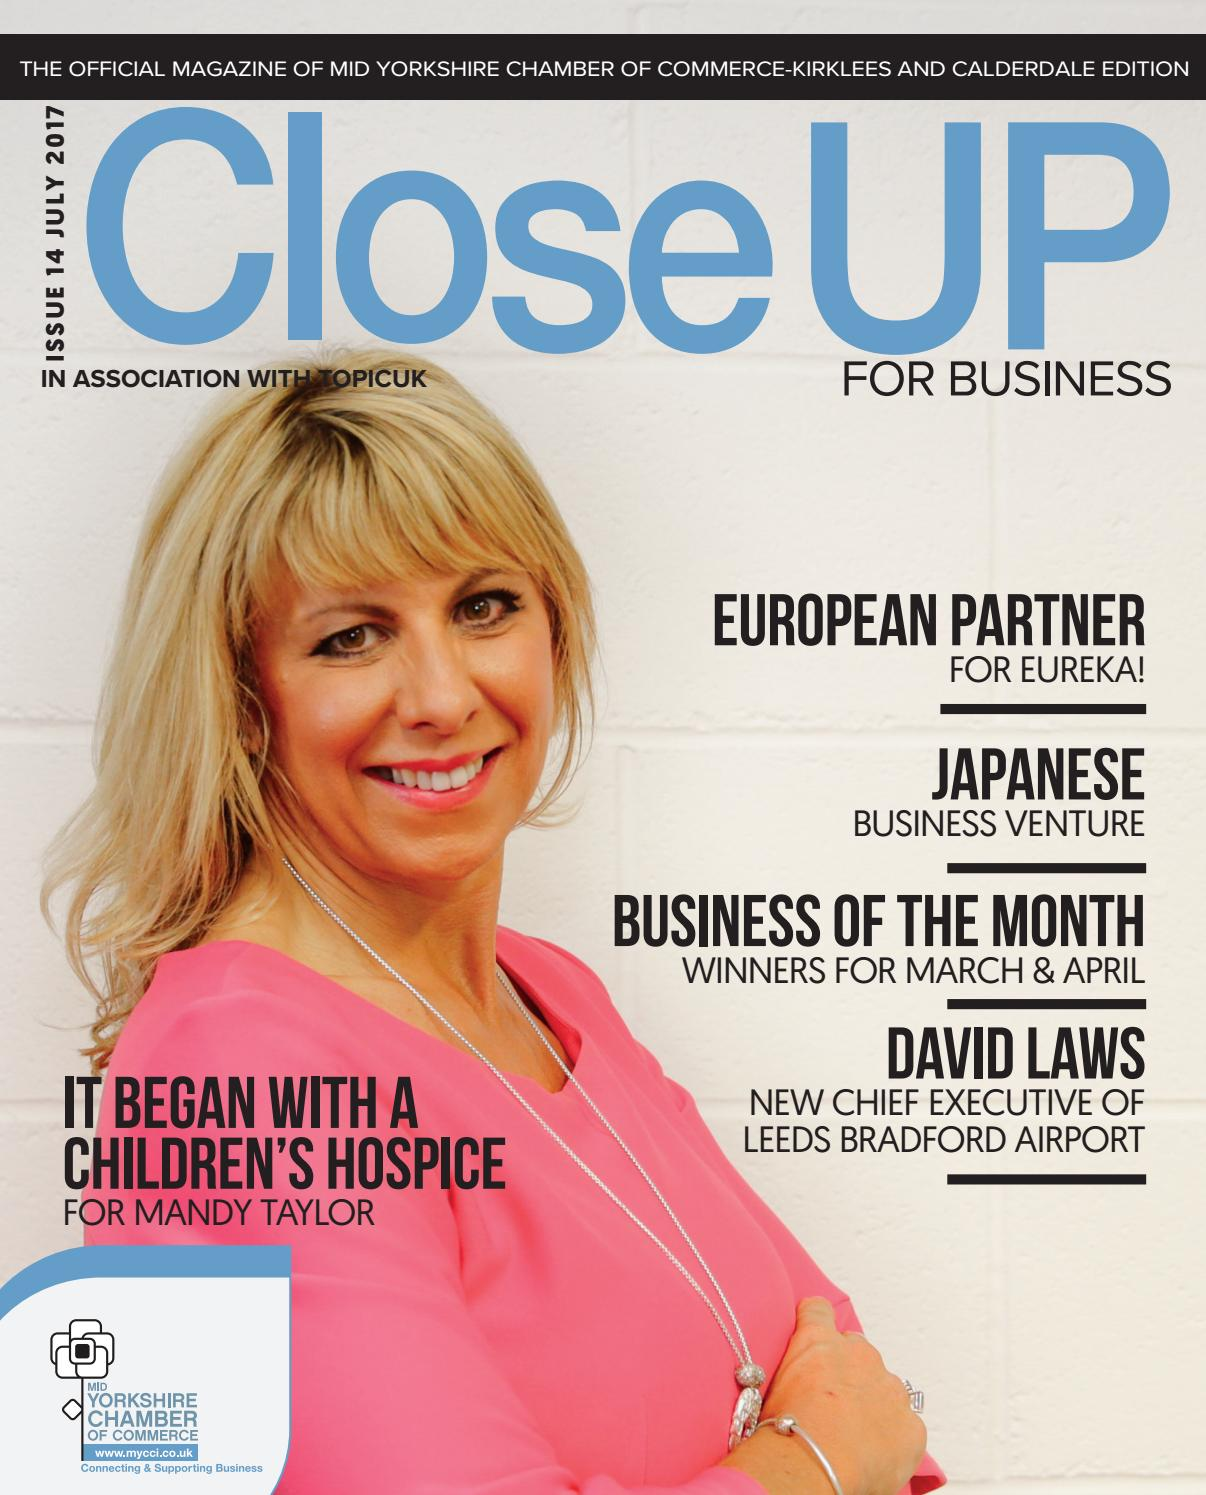 446aedf473dd1 CloseUp for Business KandC Edition july17 by TopicUK - issuu